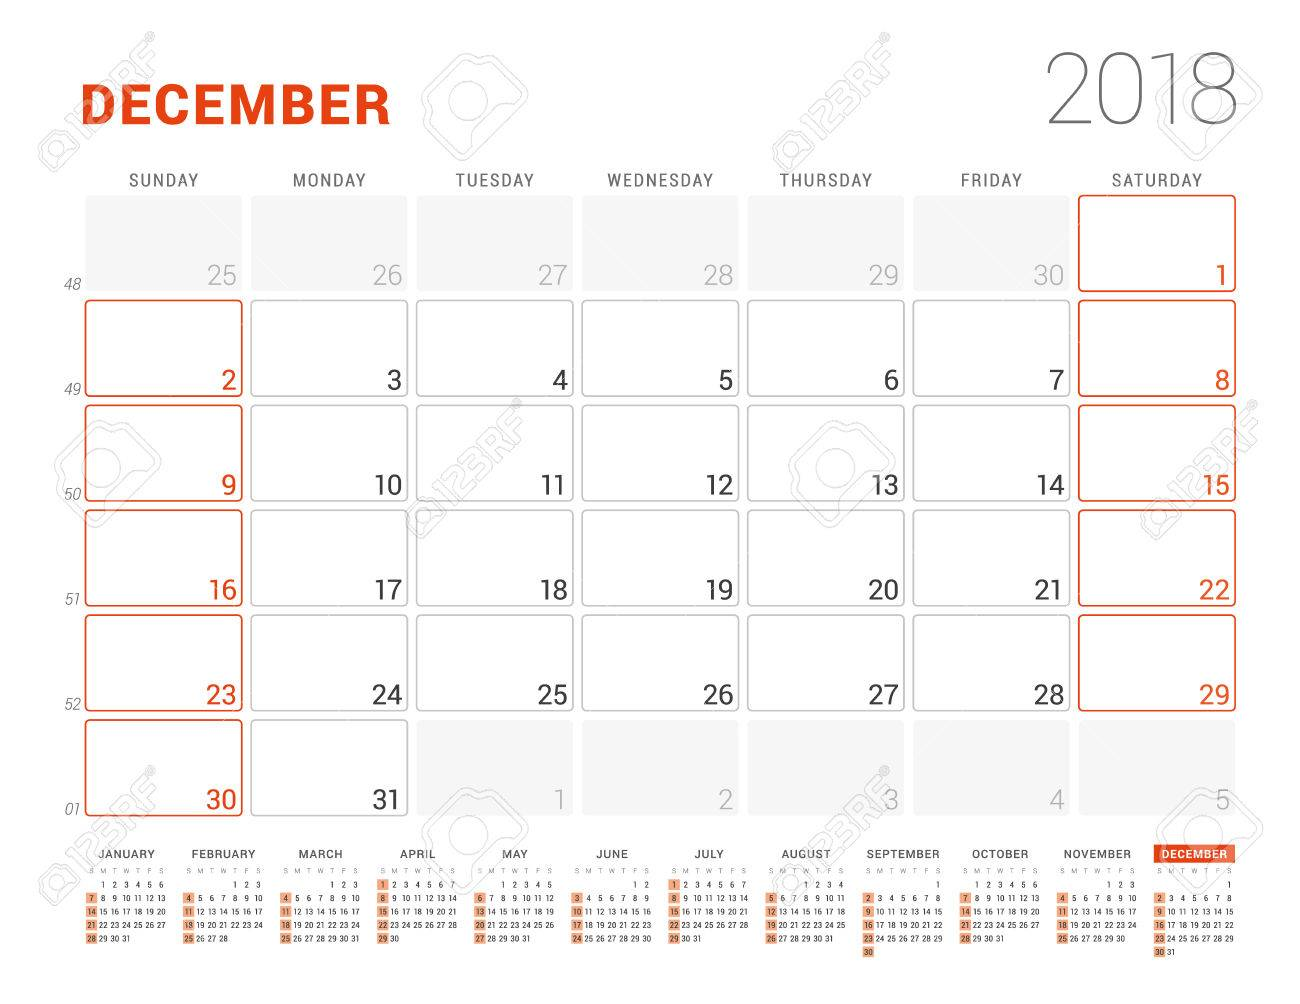 Calendar Template For 2018 Year December Business Planner With